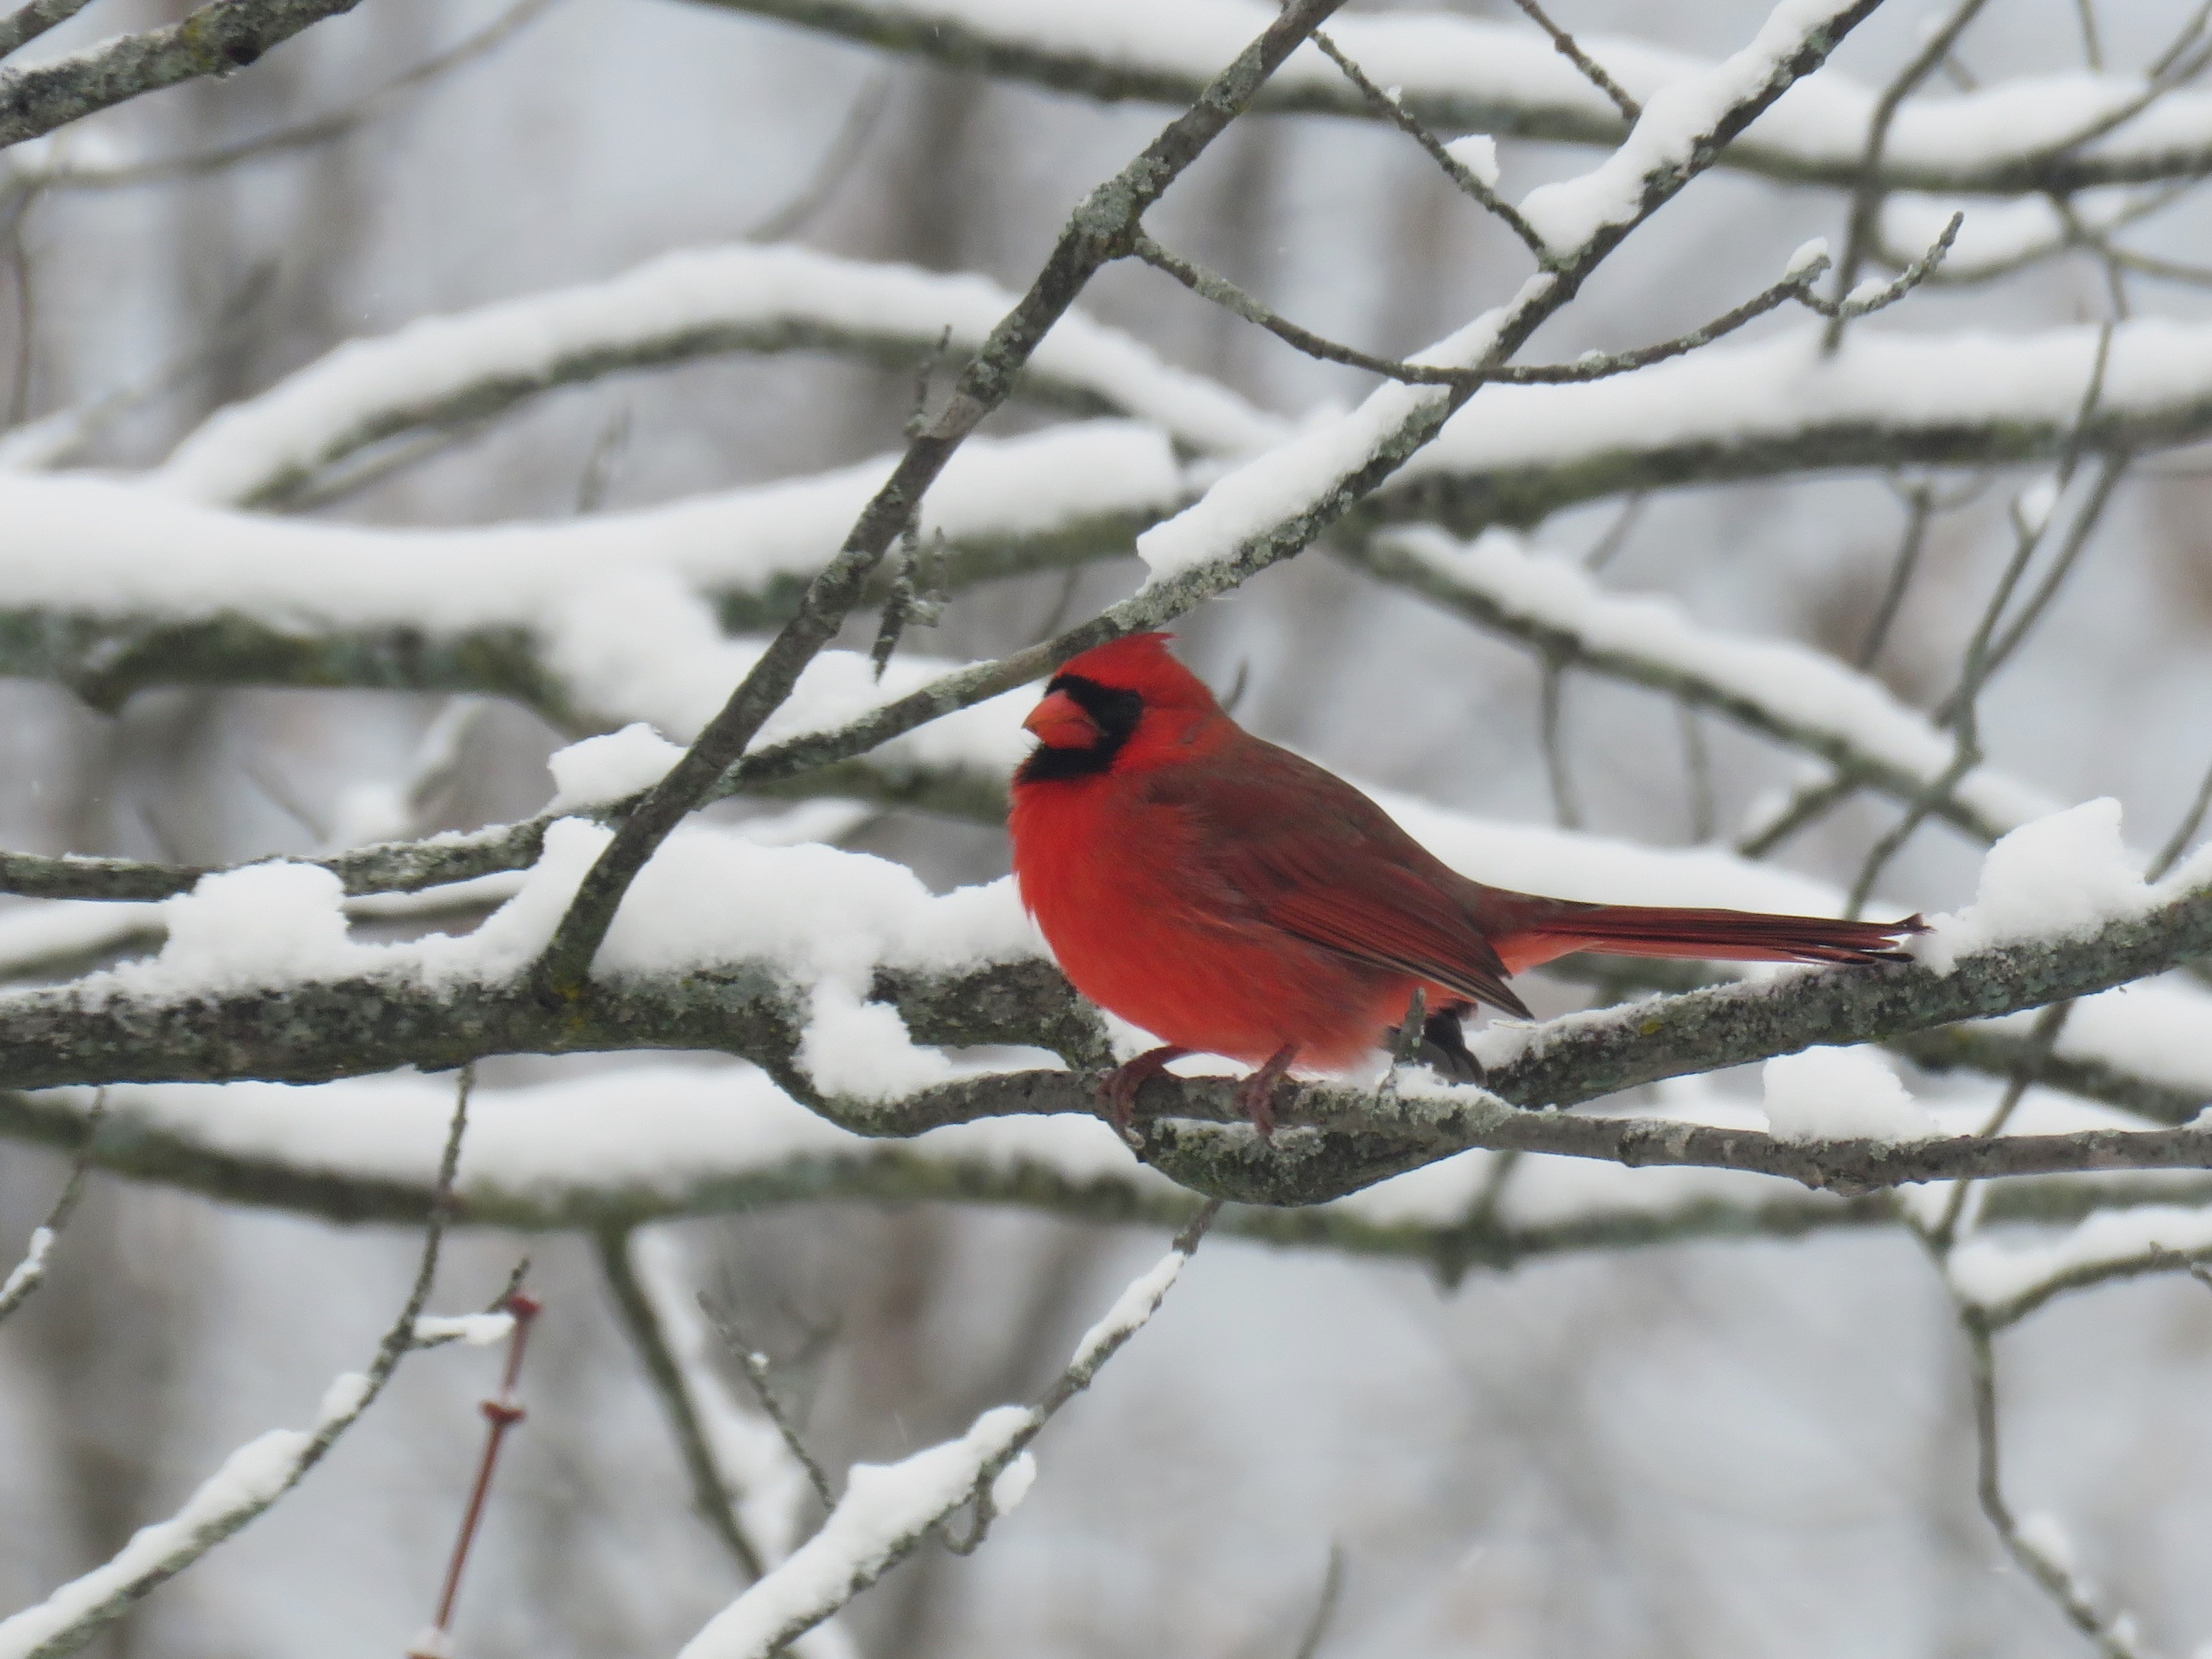 A male cardinal (brilliant red in color) sits on a snow covered tree branch.